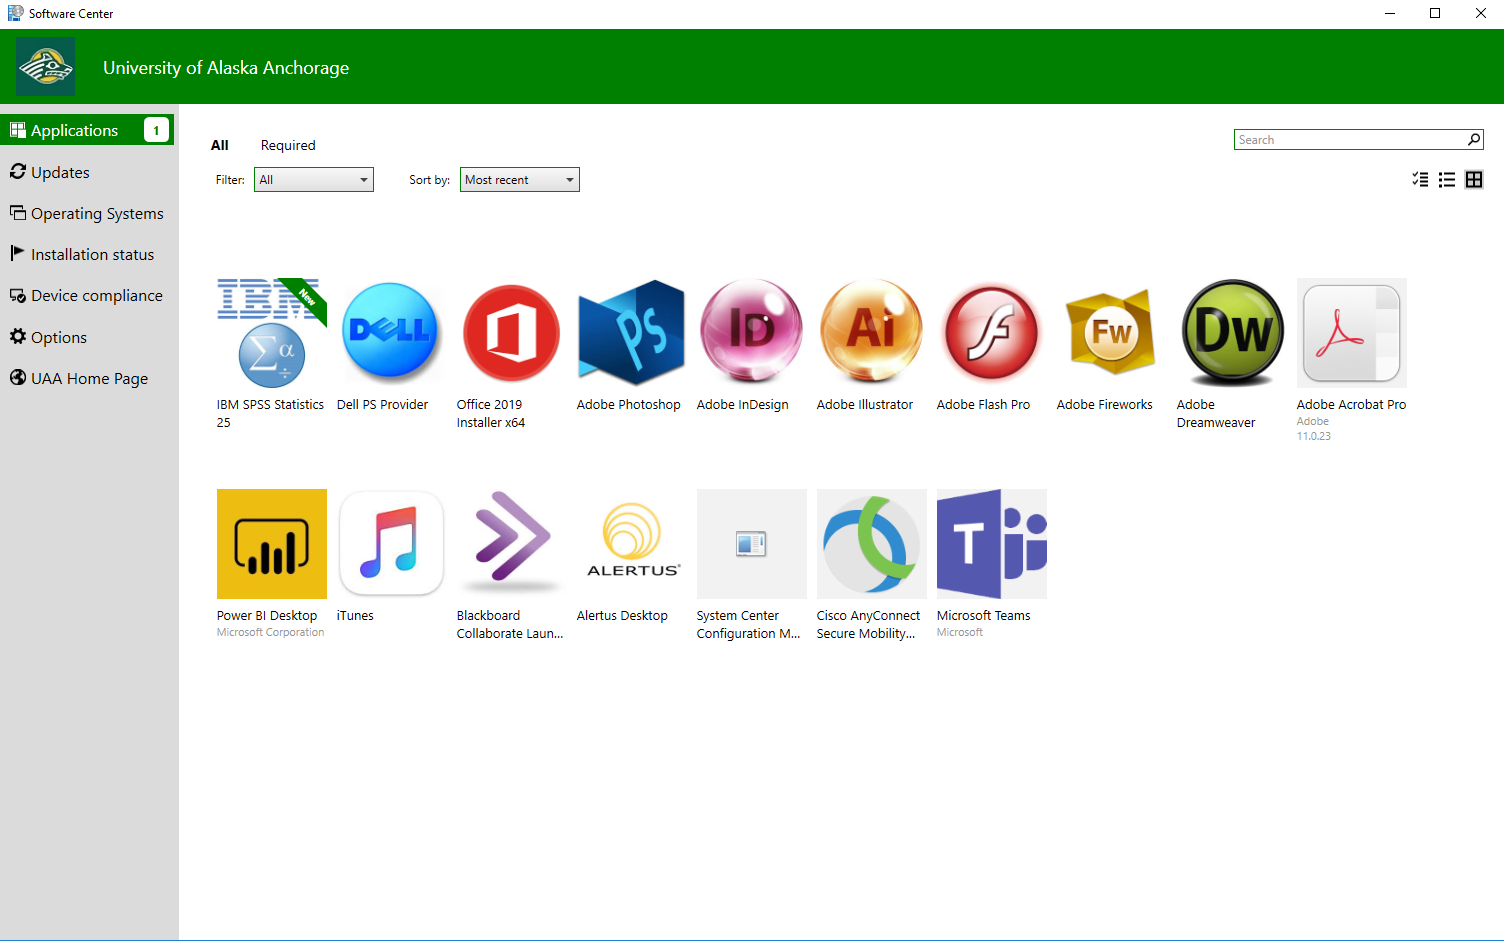 Screenshot of Software Center's Applications Tab